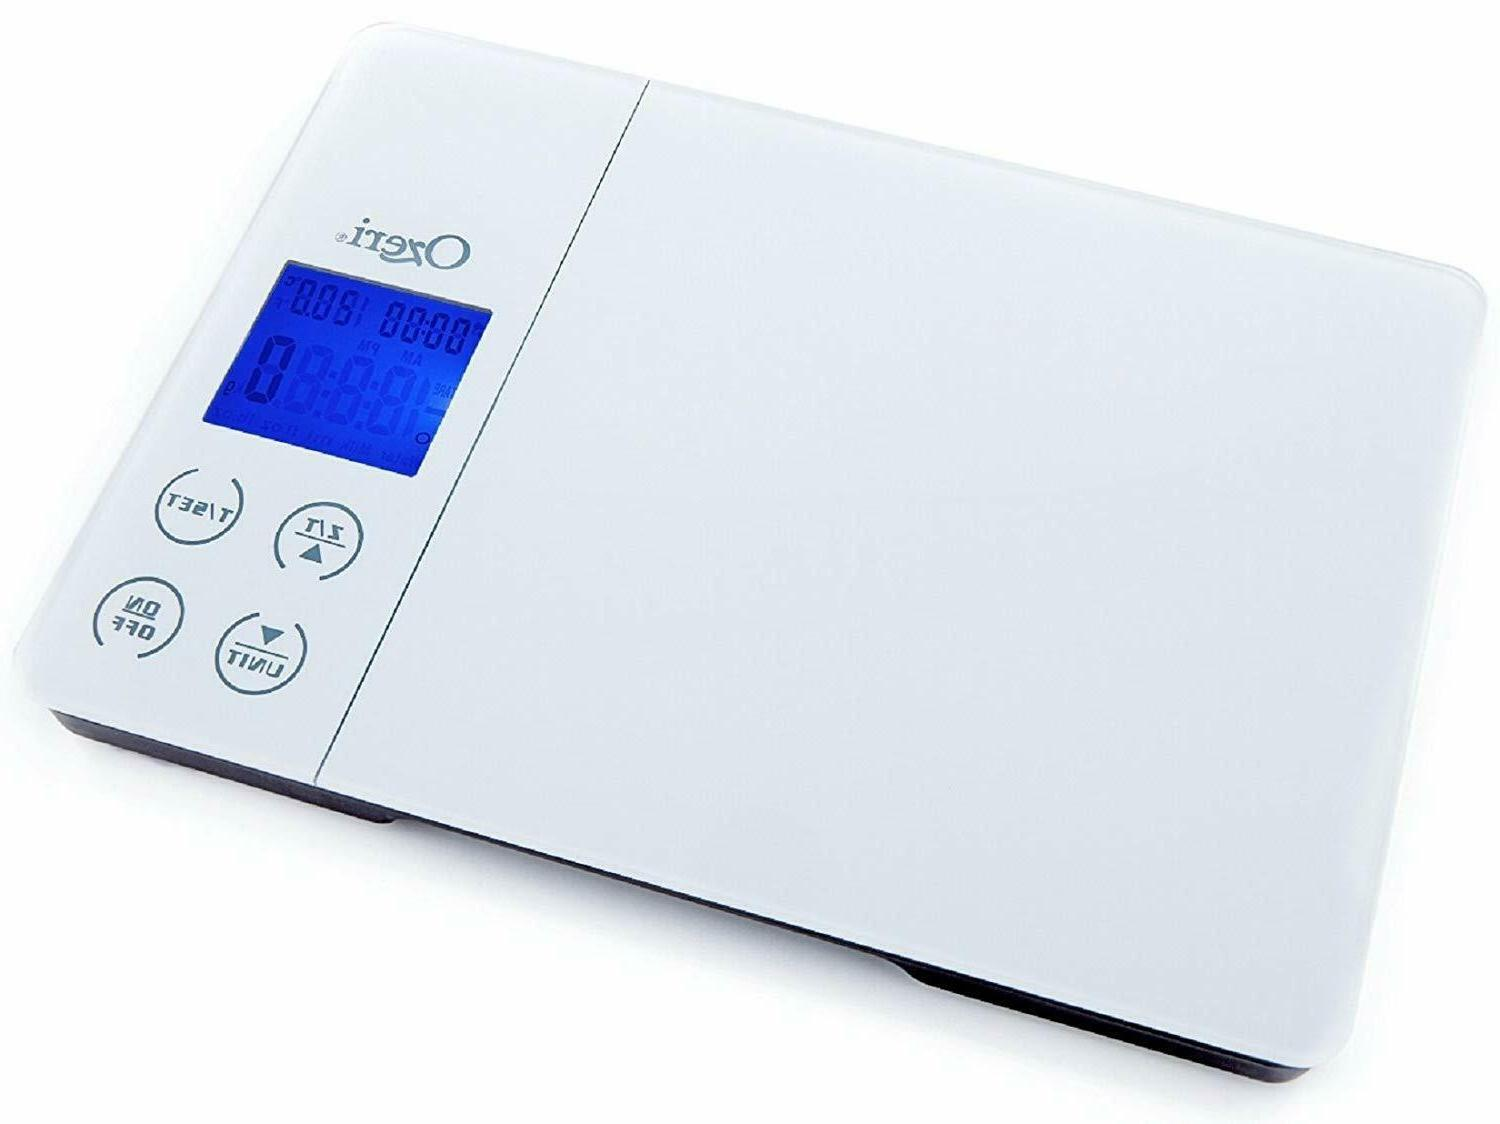 Gourmet Digital Kitchen Scale in Tempered Glass Timer, Alarm